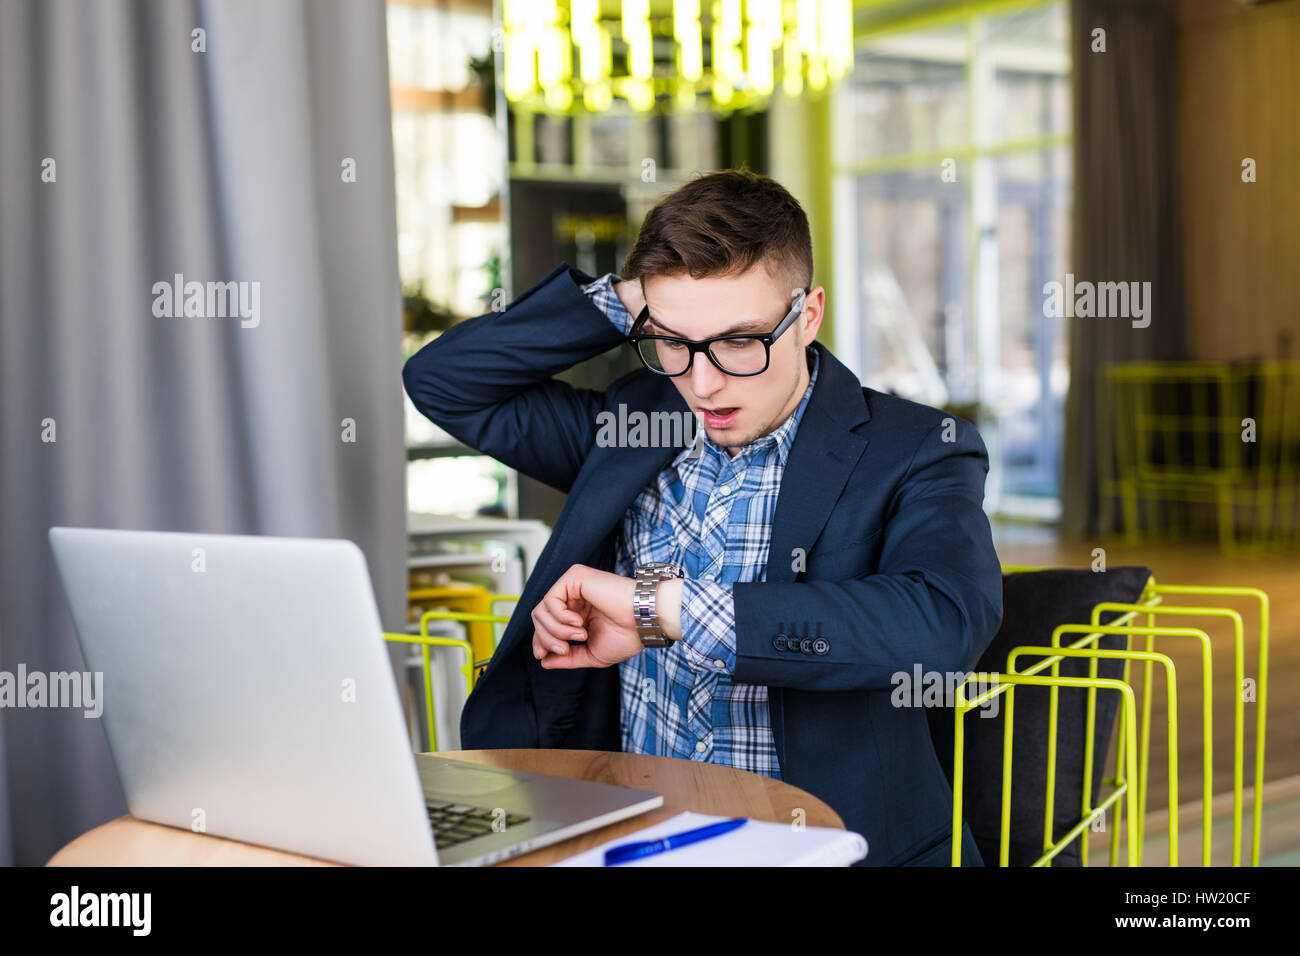 Worried businessman running out of time watching the clock at office - Stock Image